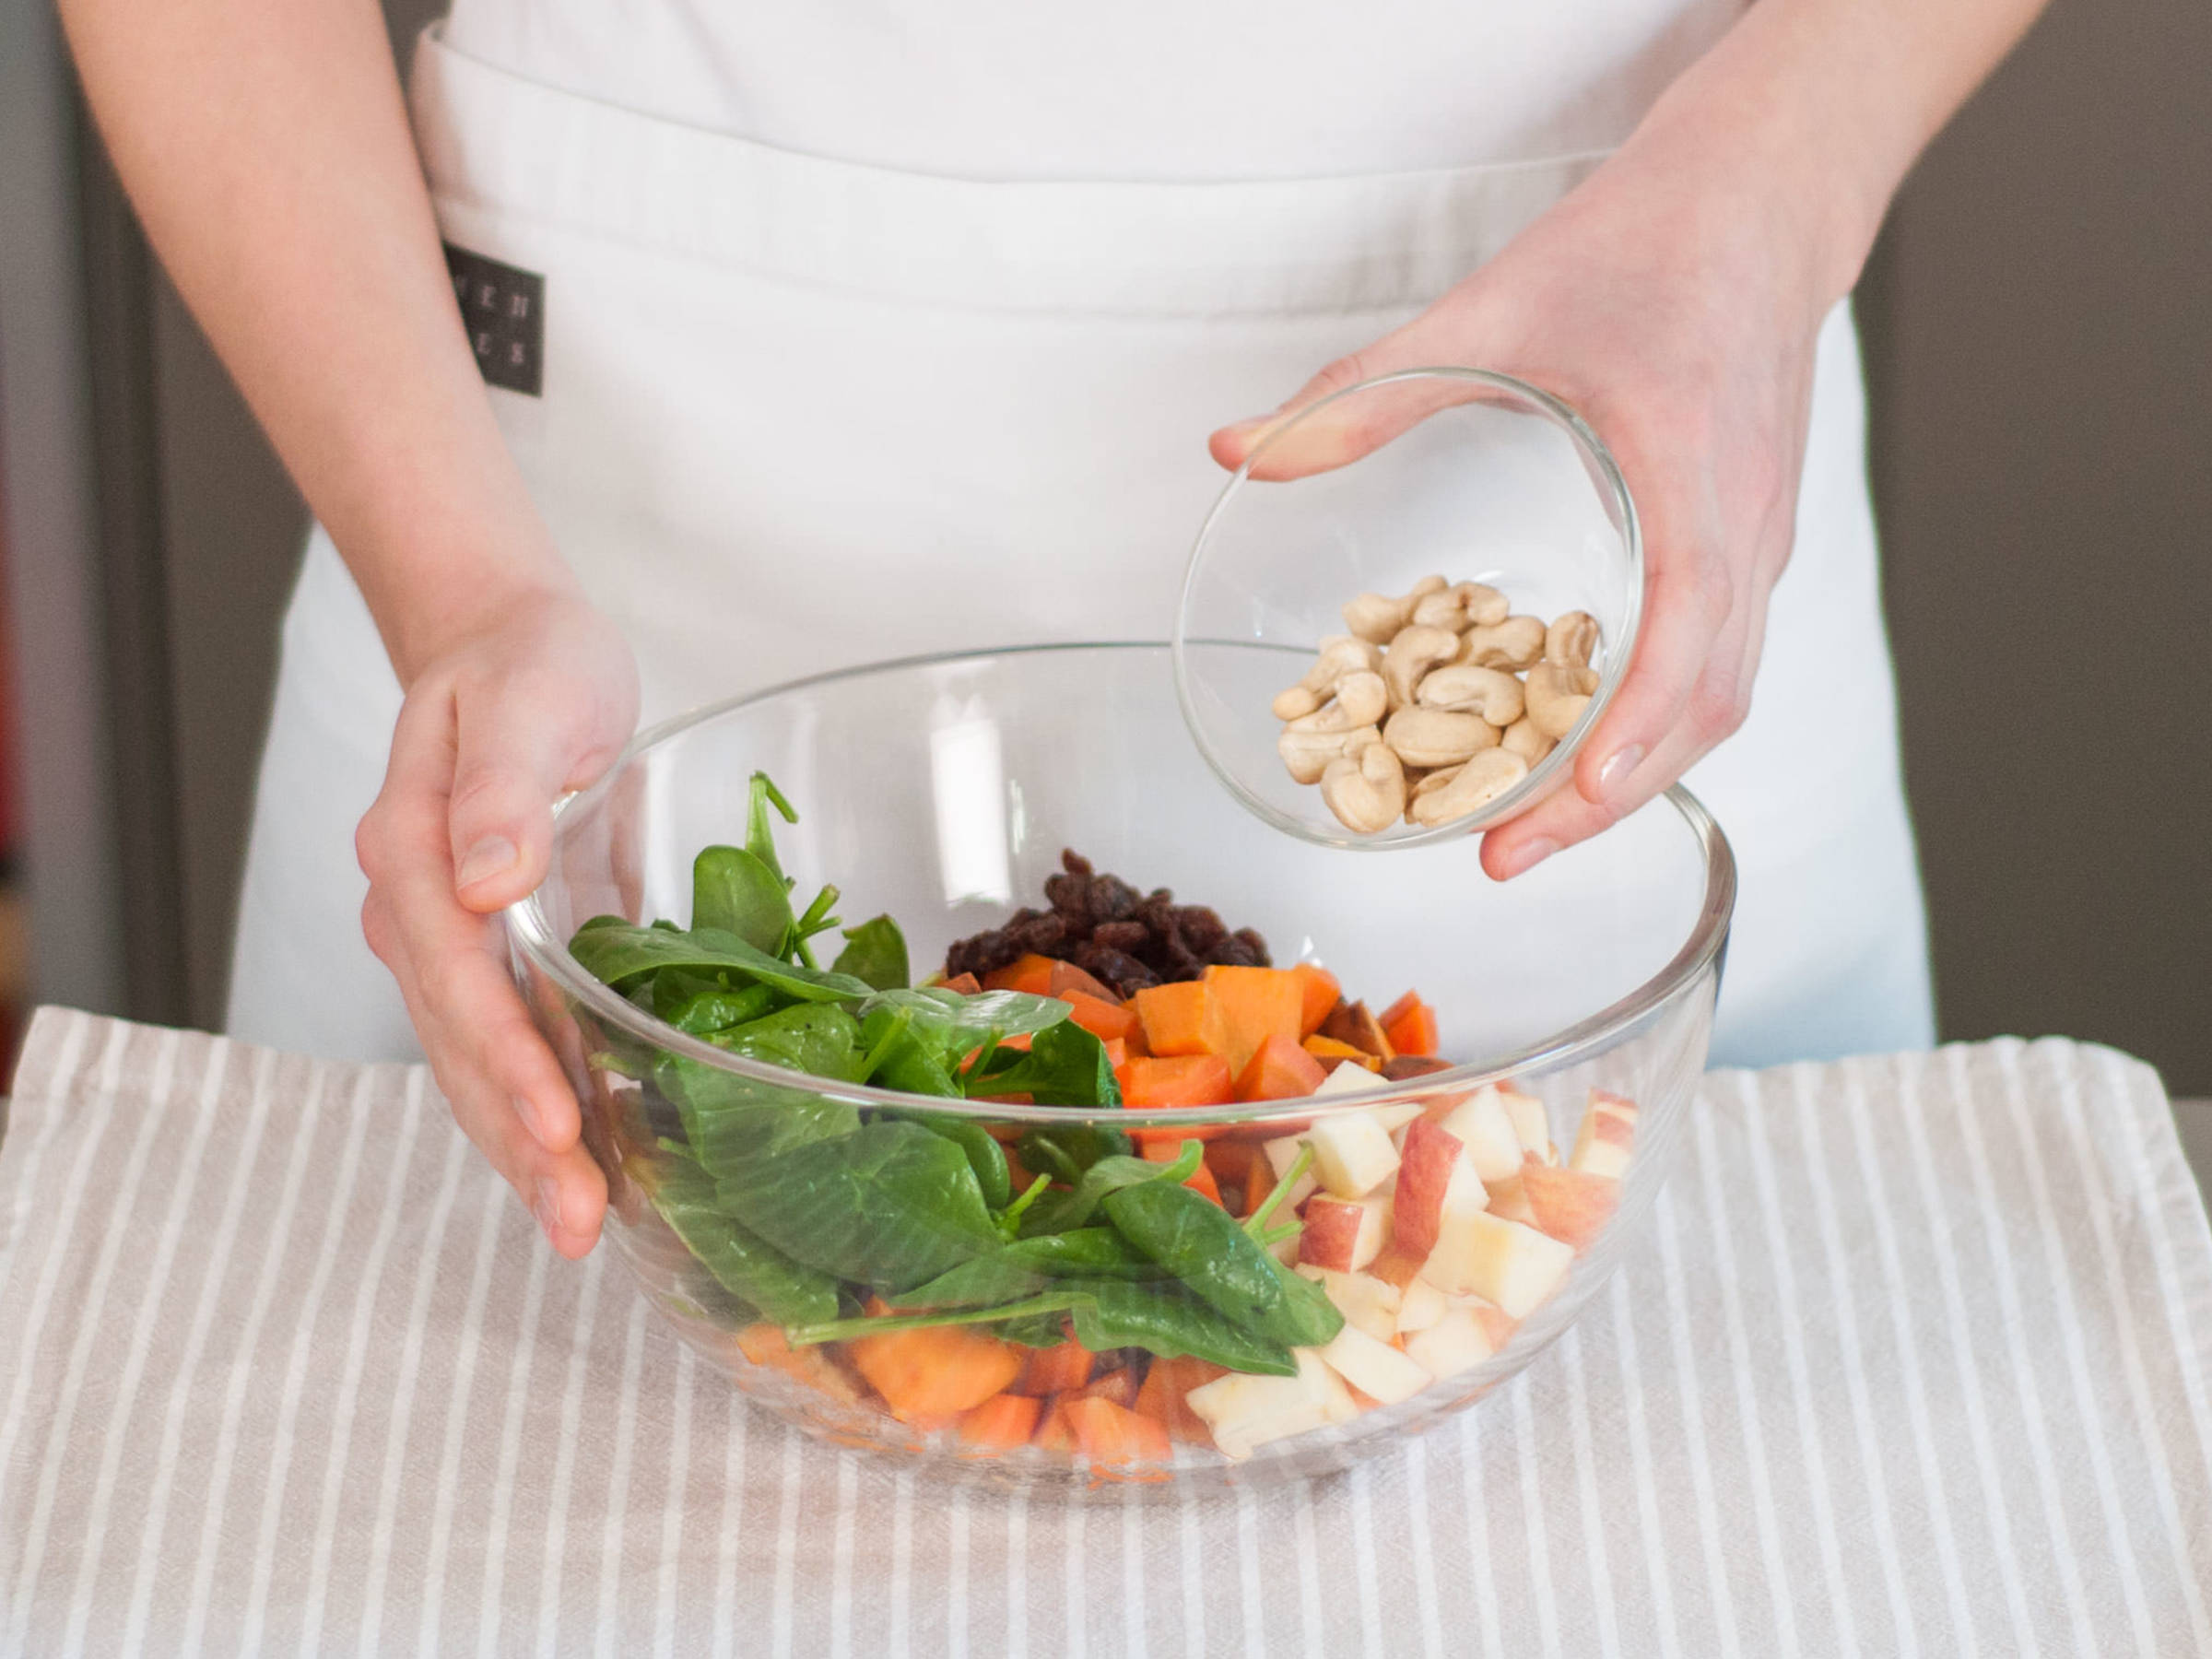 In a large bowl, combine sweet potato, apple, carrot, spinach, raisins, and cashews. Mix well to combine.